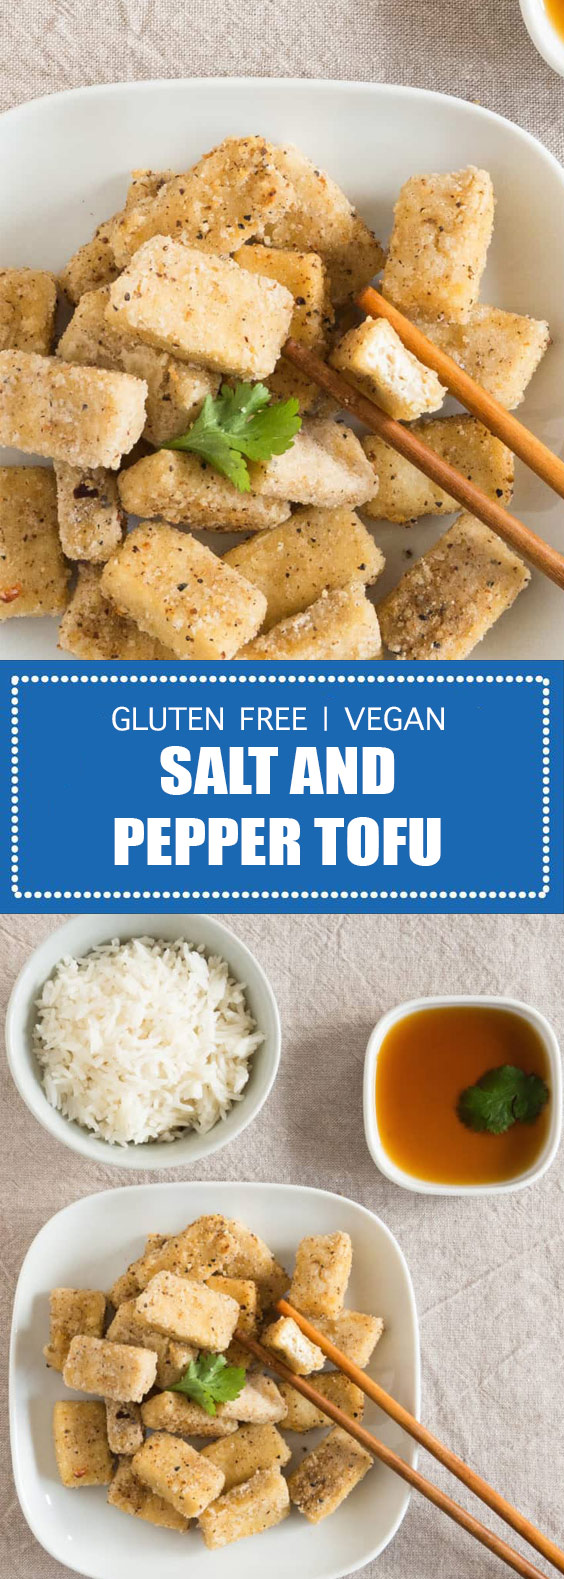 Gluten Free Salt and Pepper Tofu